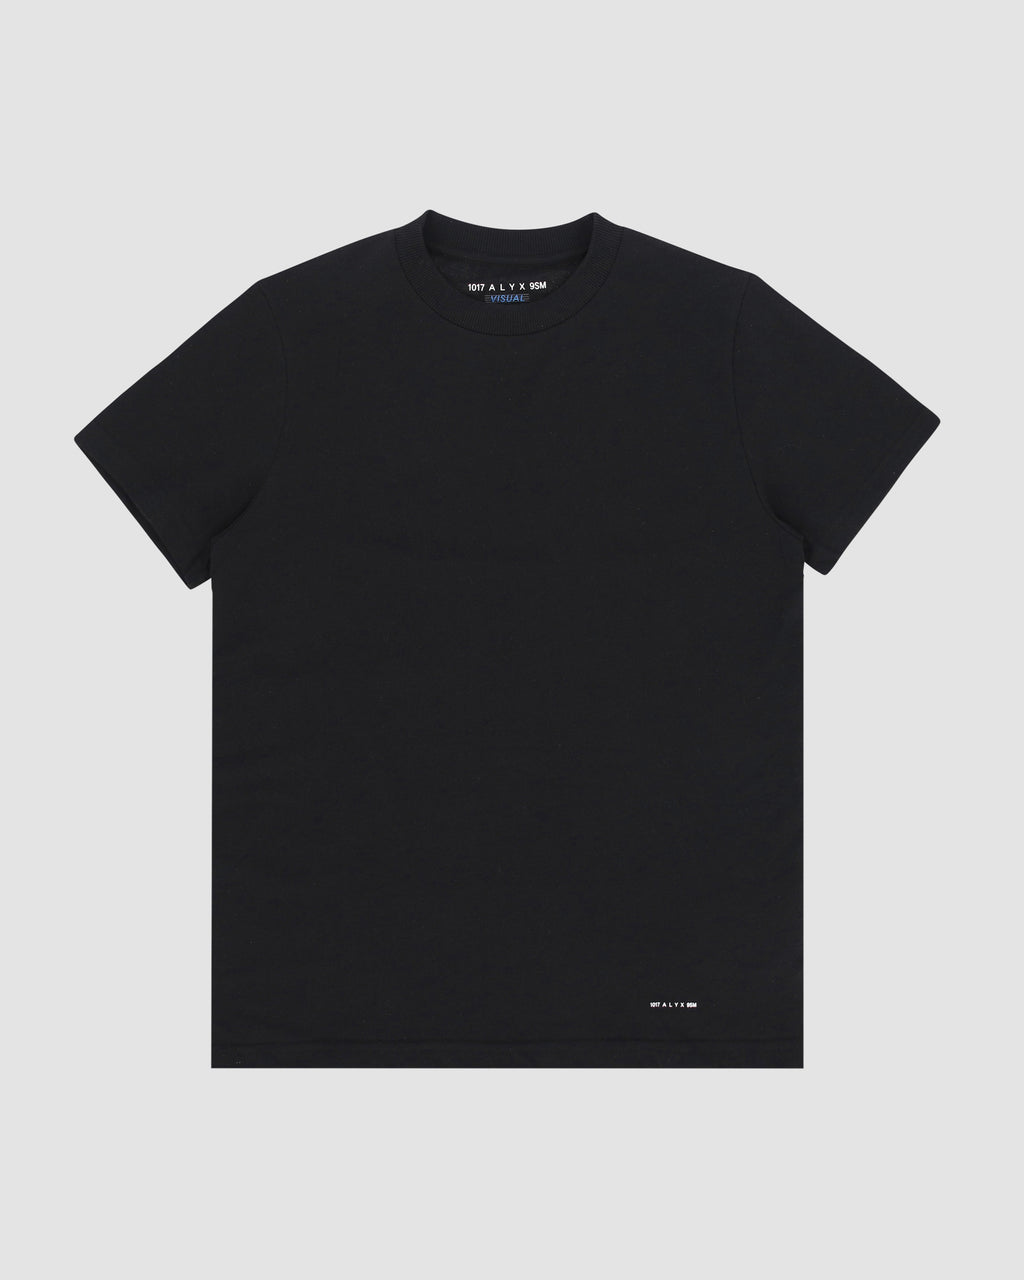 1017 ALYX 9SM | 3 PACK TEE | T-Shirt | Black, F19, TESTINTEGRATION, Visual